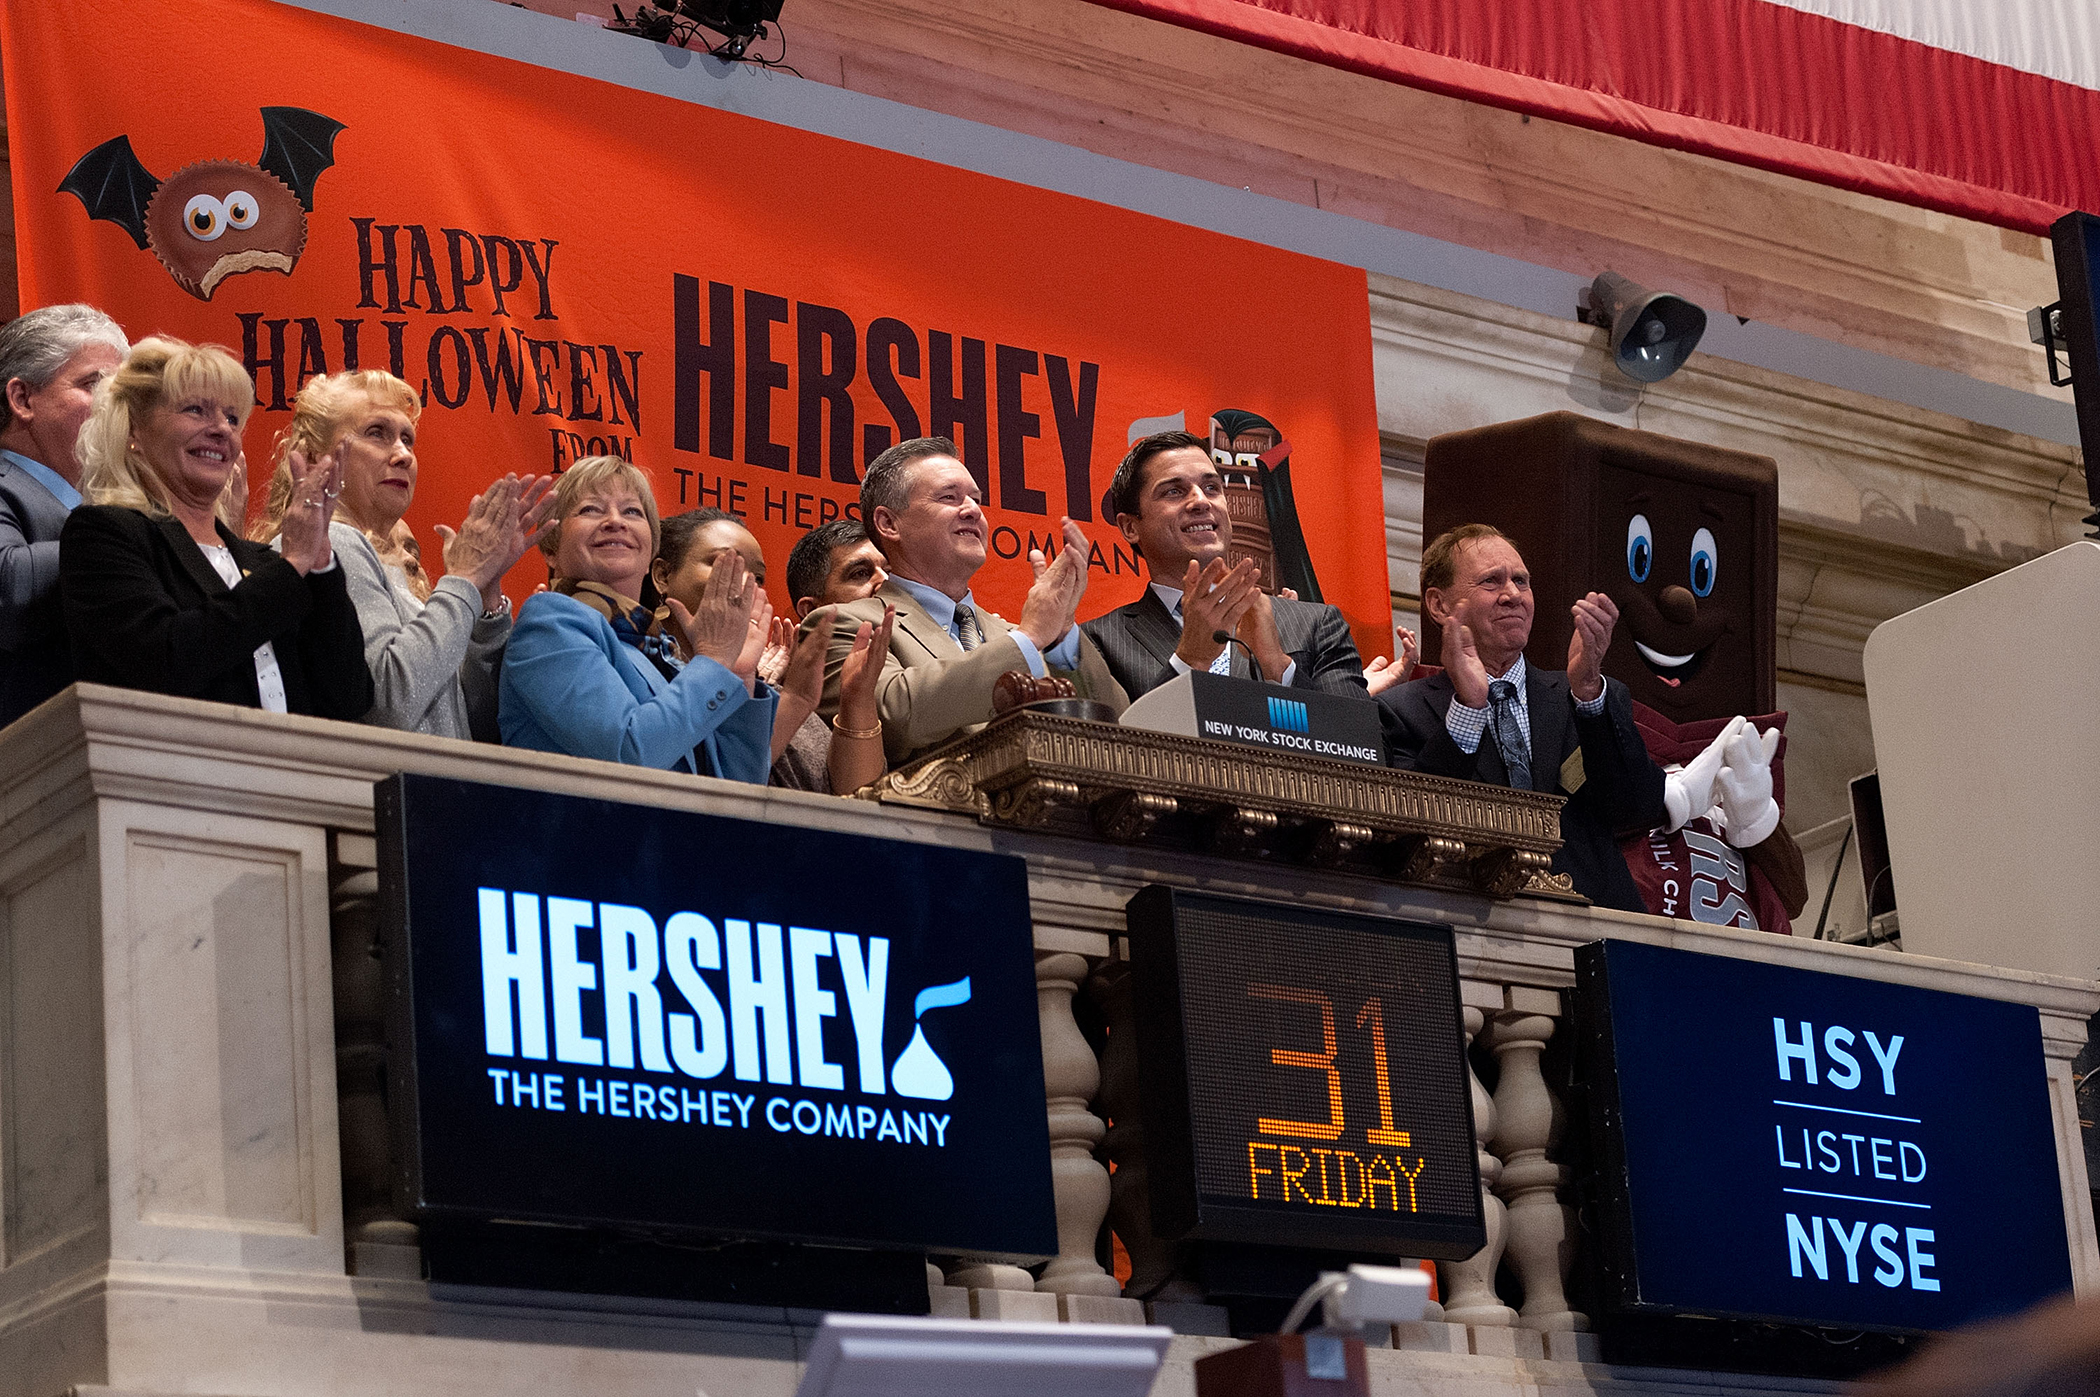 The Hershey Company president and CEO J.P. Bilbrey (C) rings the NYSE Opening Bell at the New York Stock Exchange on October 31, 2014 in New York City.